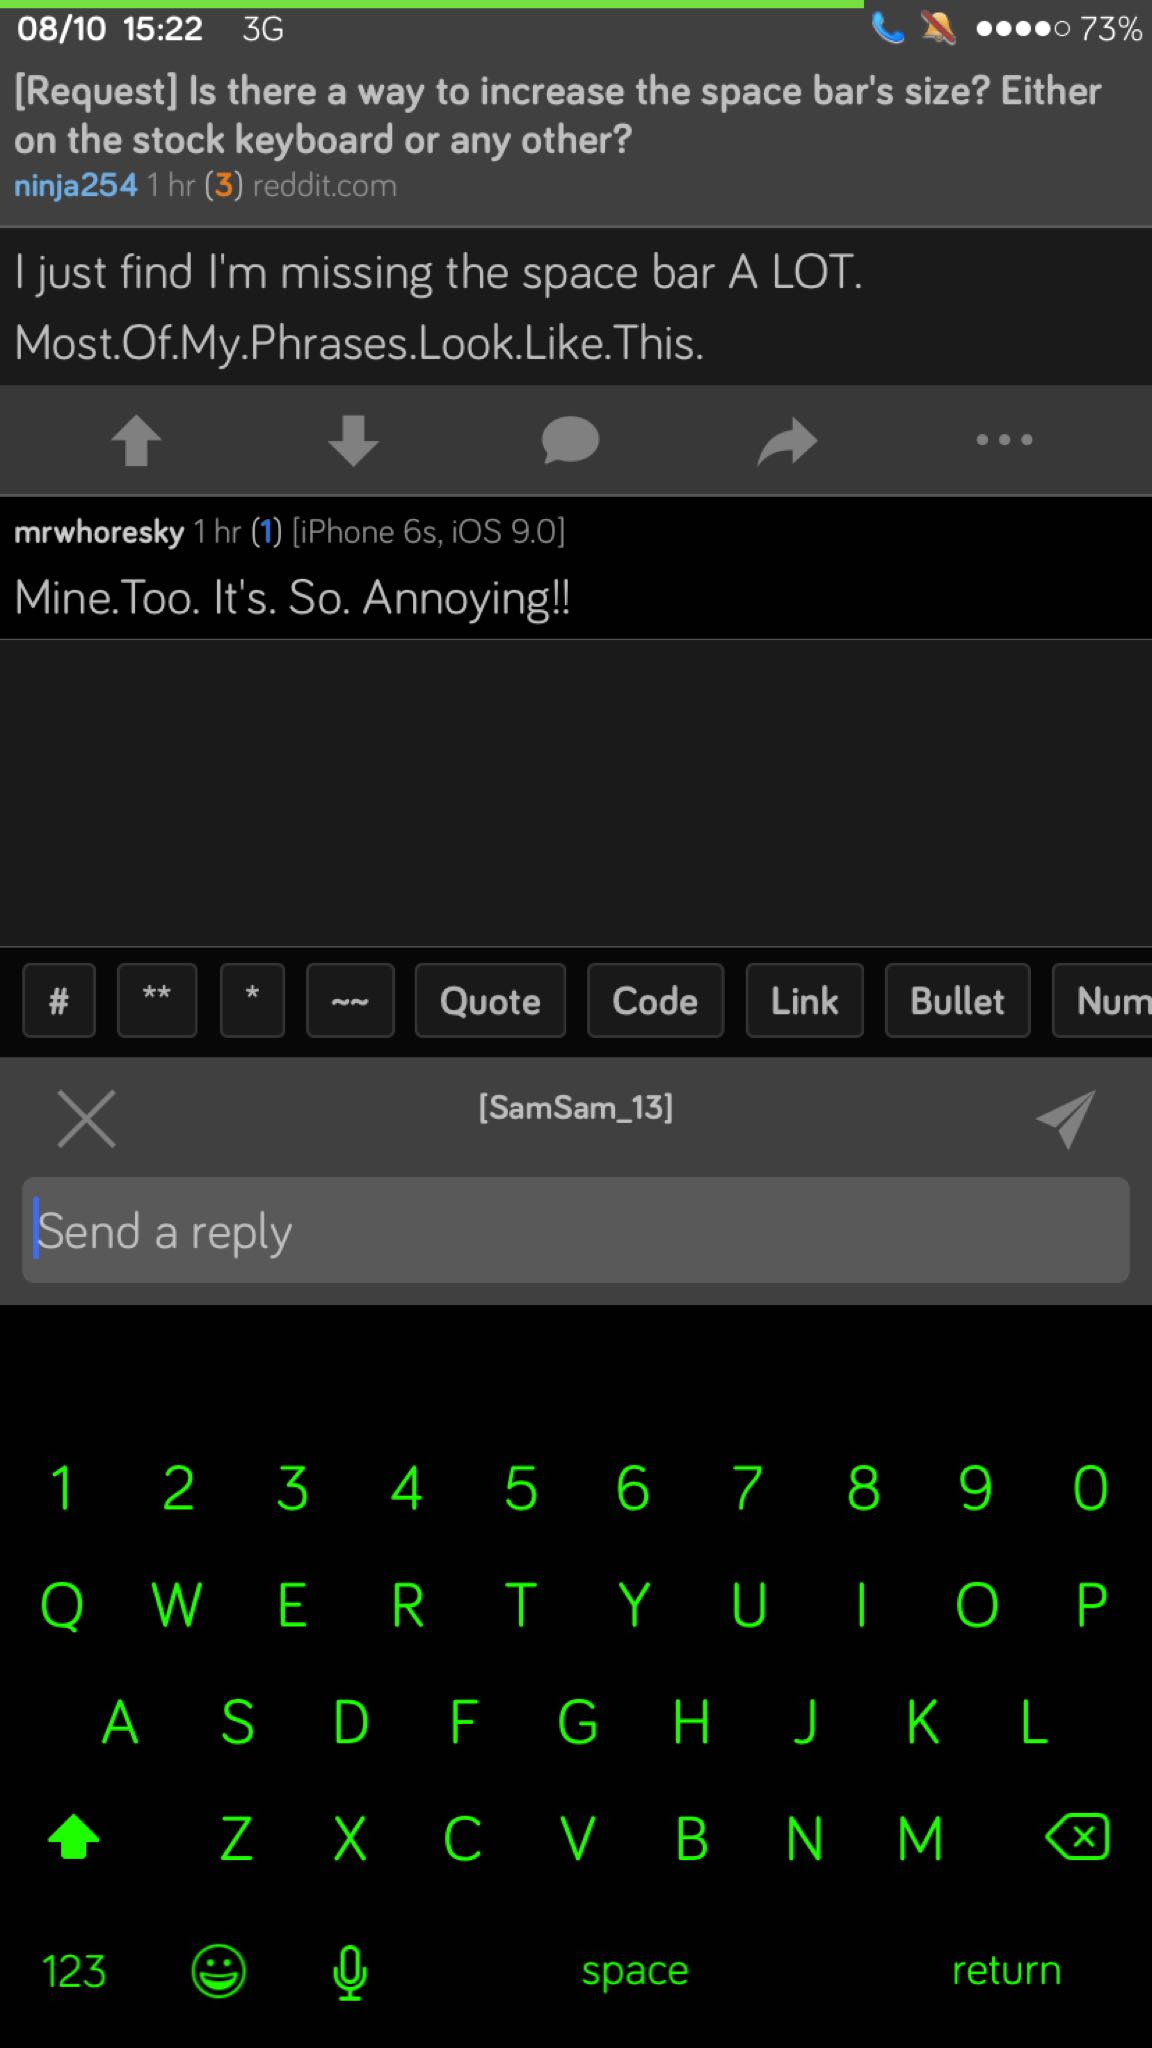 Request Is there a way to increase the space bar's size? Either on the stock keyboard or any ...